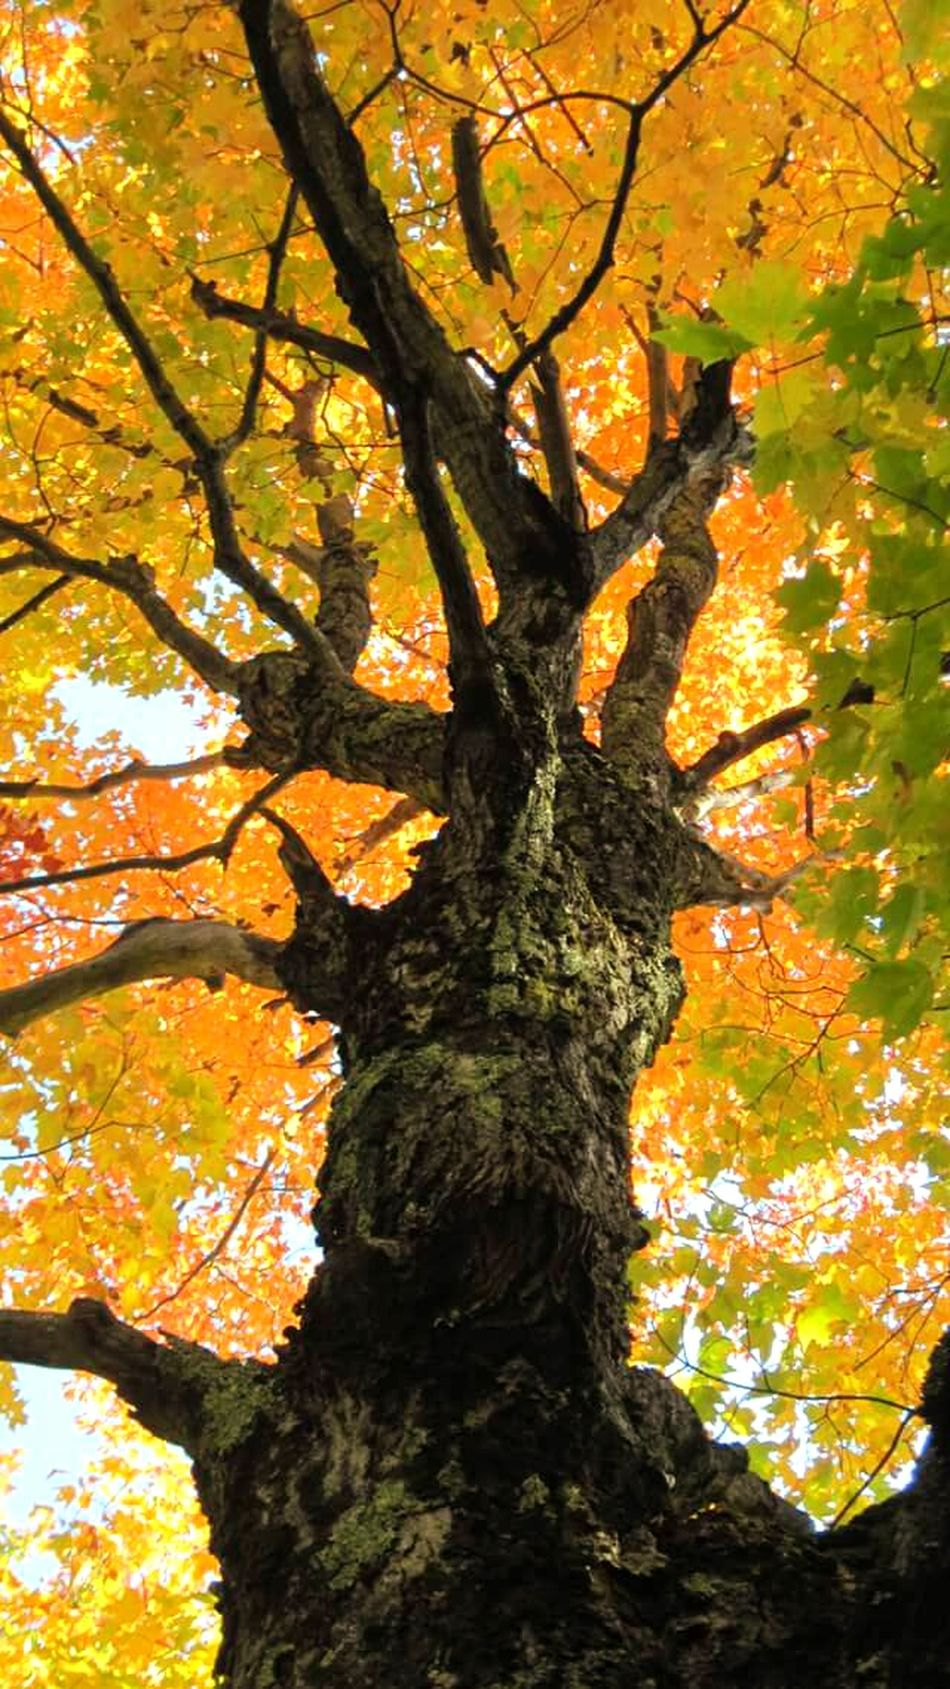 Autumn Montgomeryvermont Nature Hugging A Tree Seasons Colorsonfire Enjoying Life